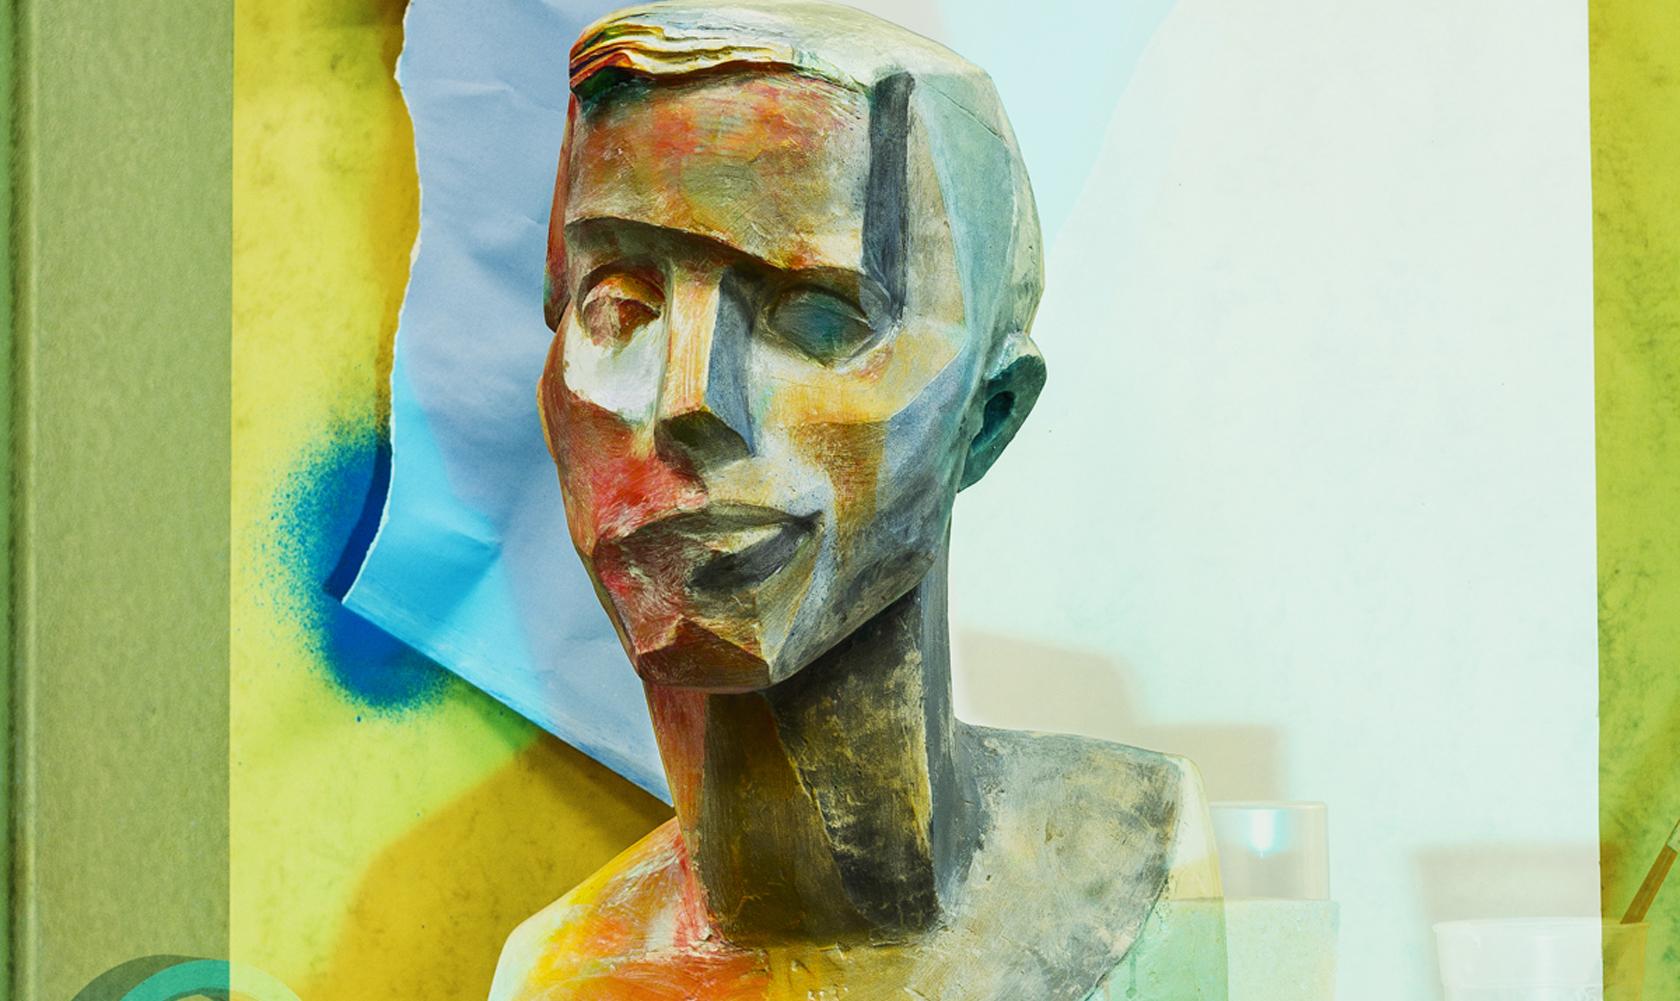 Painted-plaster-head-Self-portrait-of-a-man-in-orangedetail-2015-©-Peter-Puklus